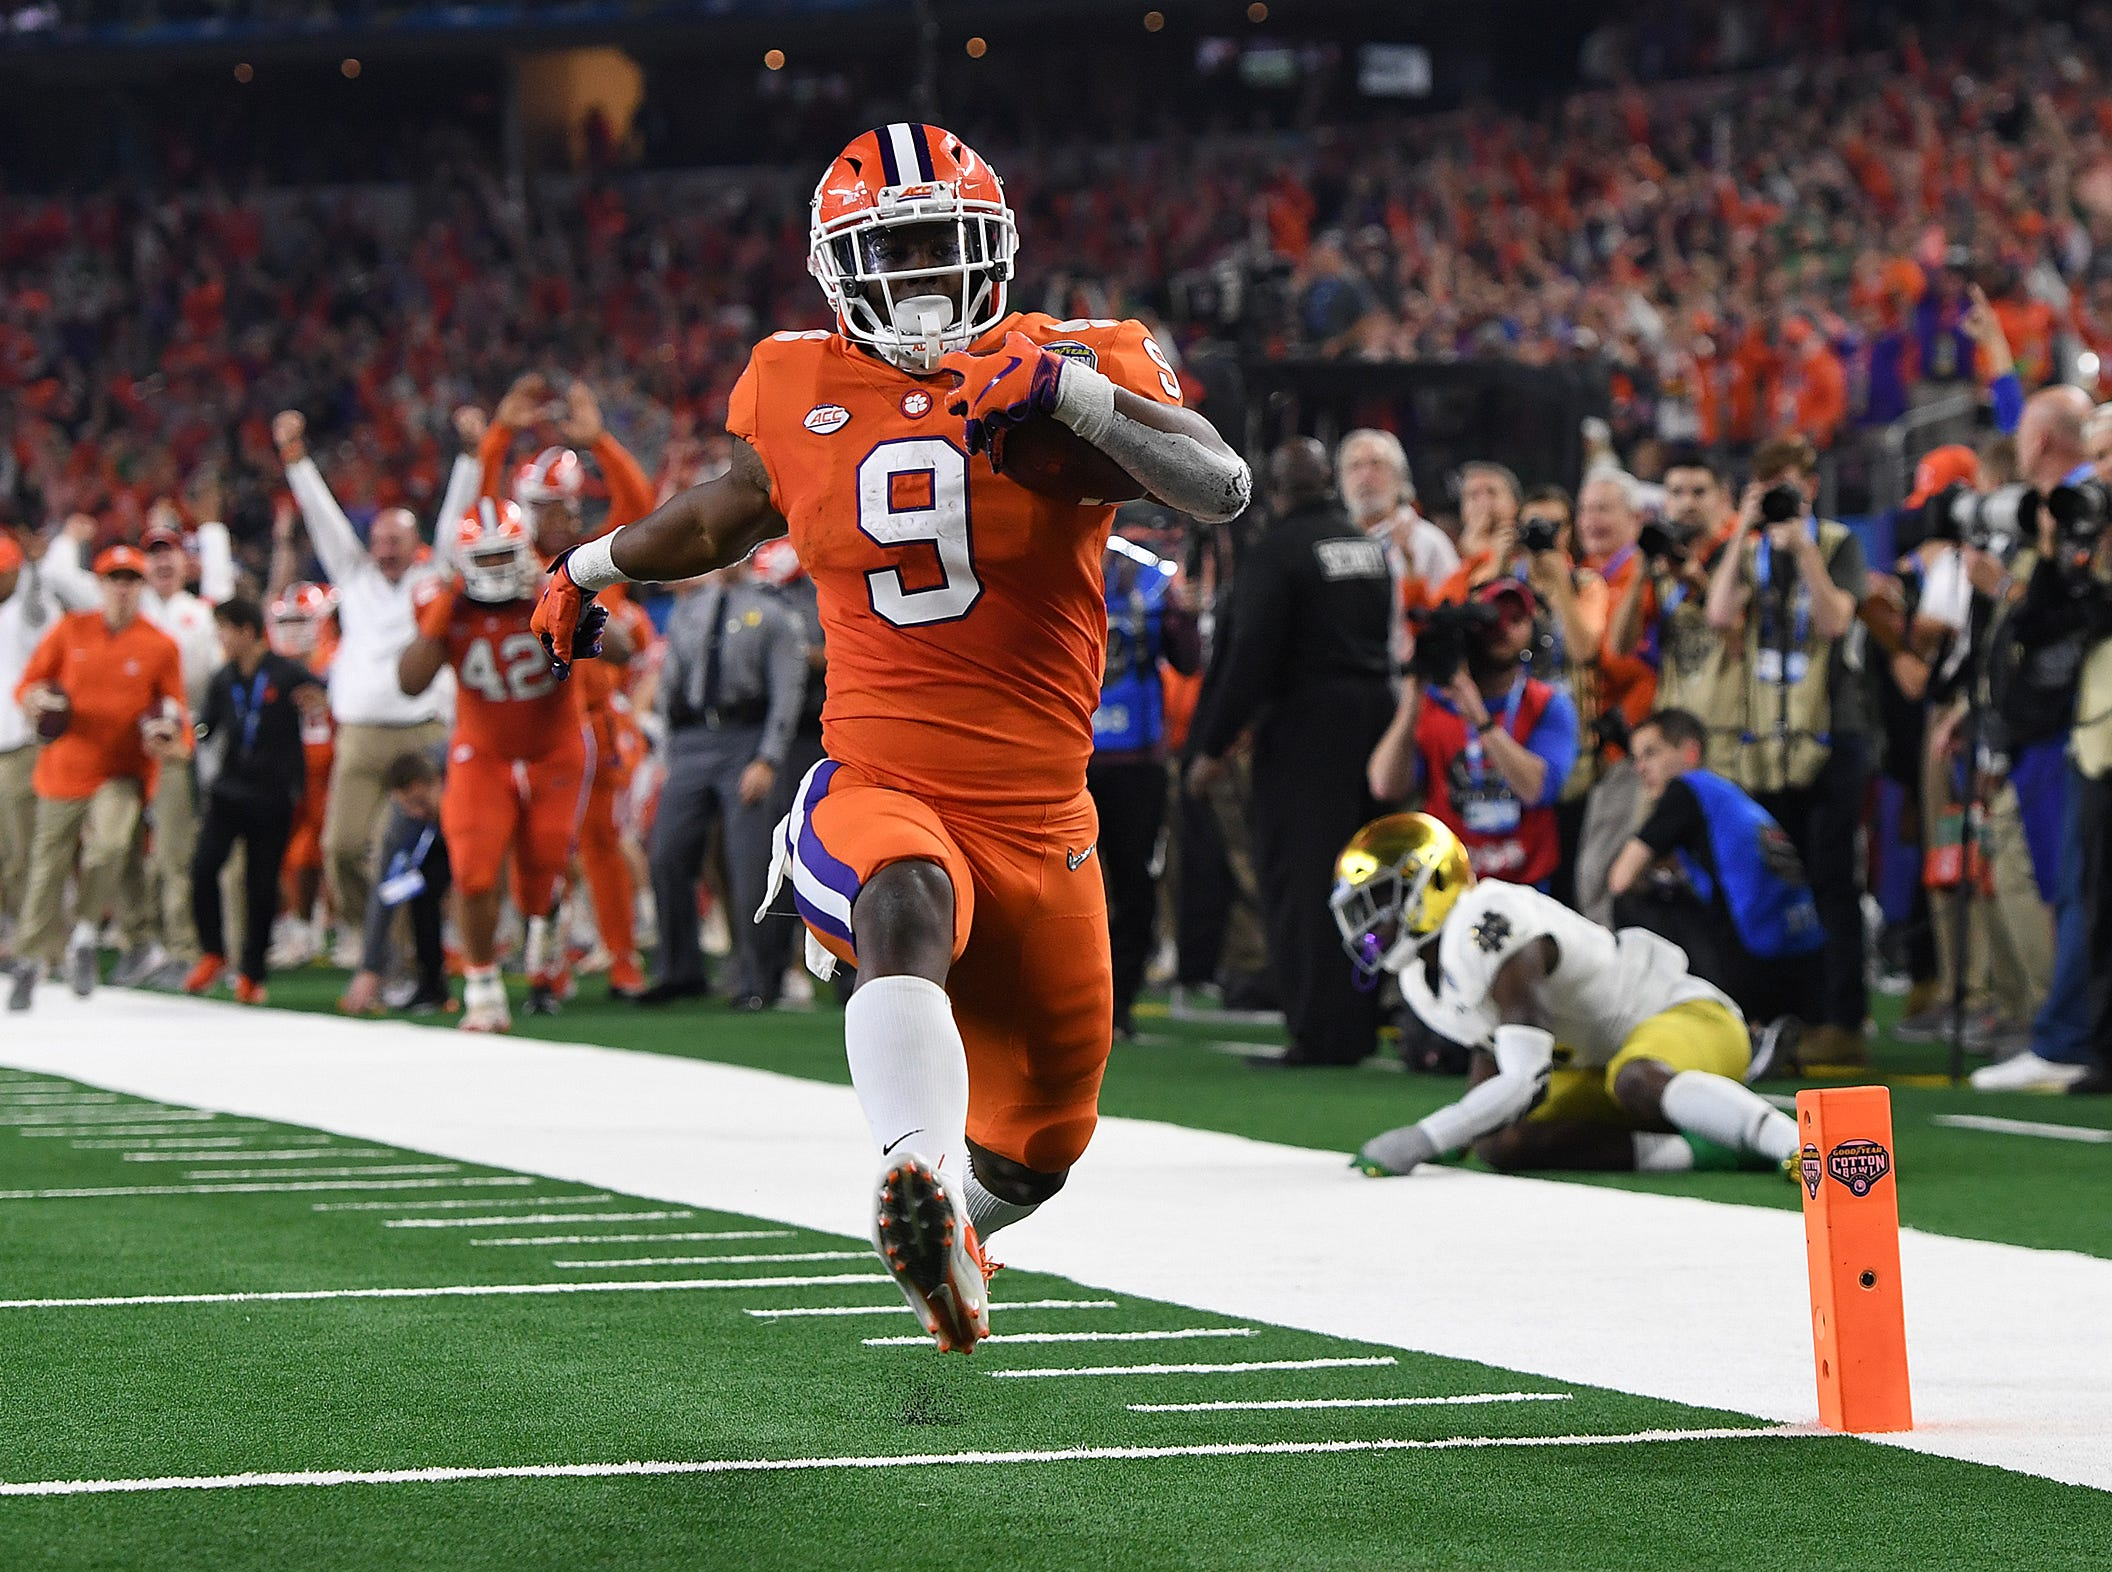 Clemson running back Travis Etienne (9) high steps it into the end zone on a 62 yard TD carry against Notre Dame during the third quarter of the Goodyear Cotton Bowl at AT&T stadium in Arlington, Texas on Saturday.